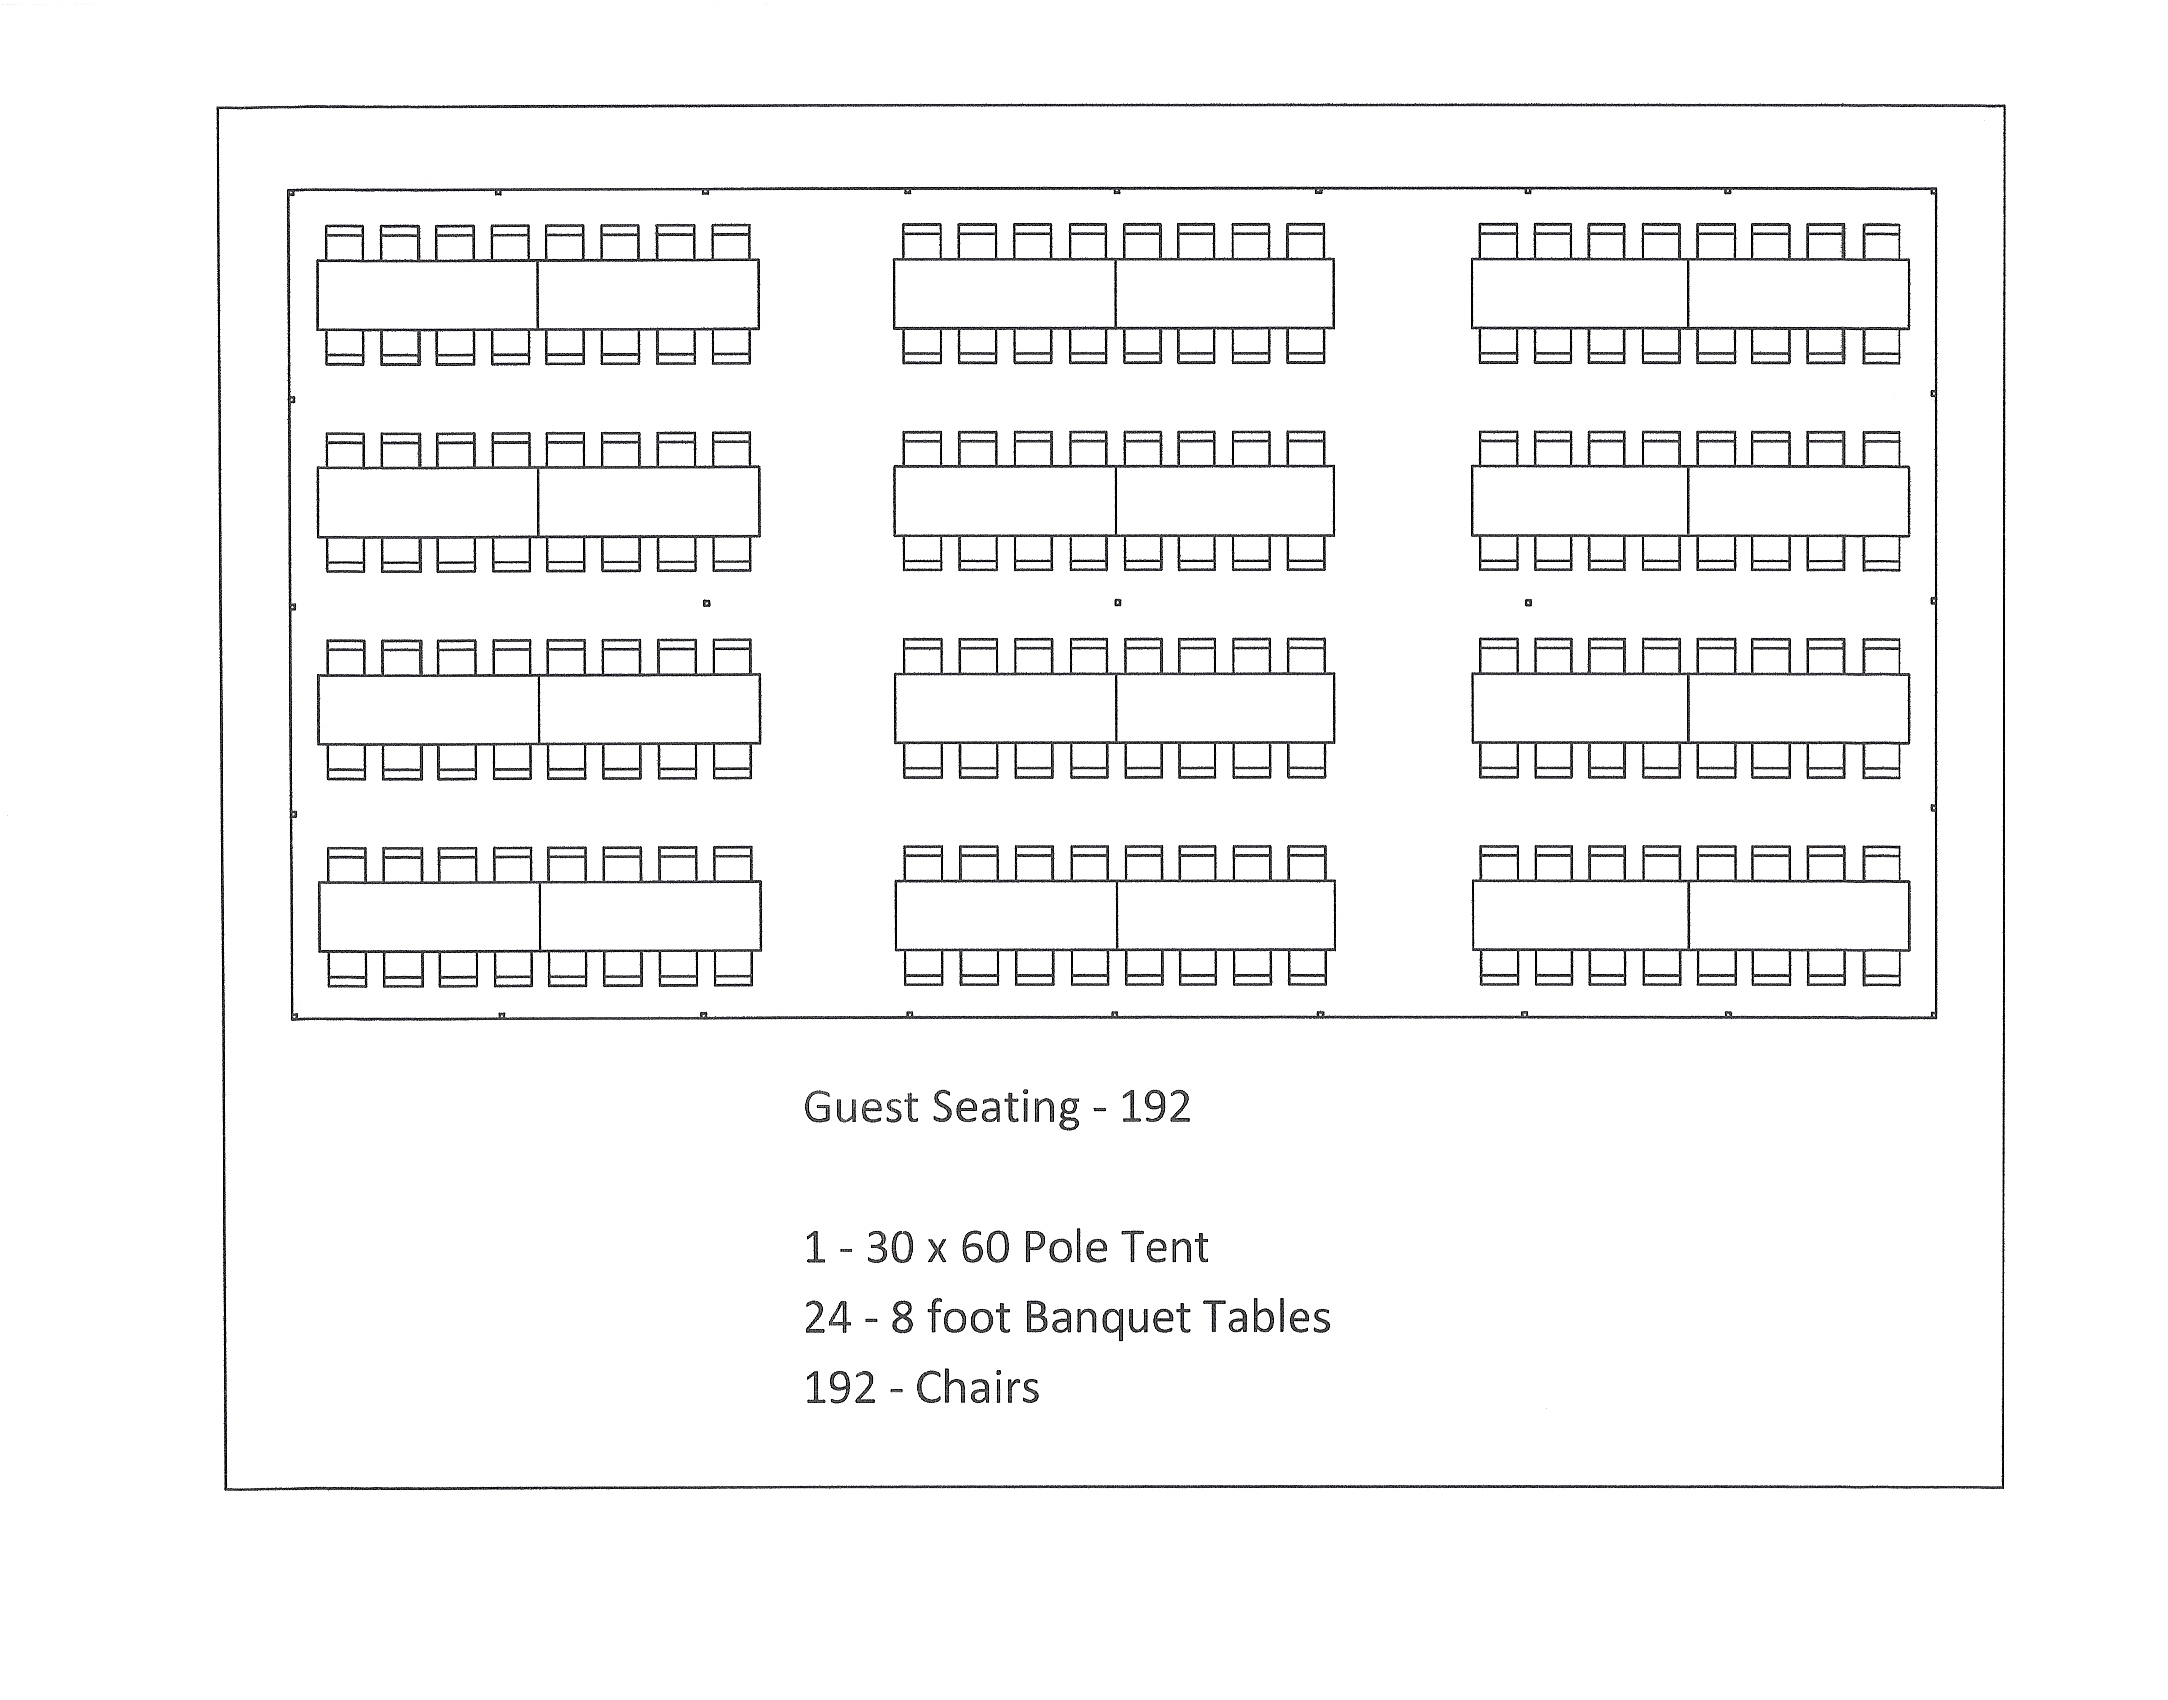 ... 30x60 pole tent banquet table seating  sc 1 st  Canton Canopies & 30 x 60 Pole Tent Seating arrangement